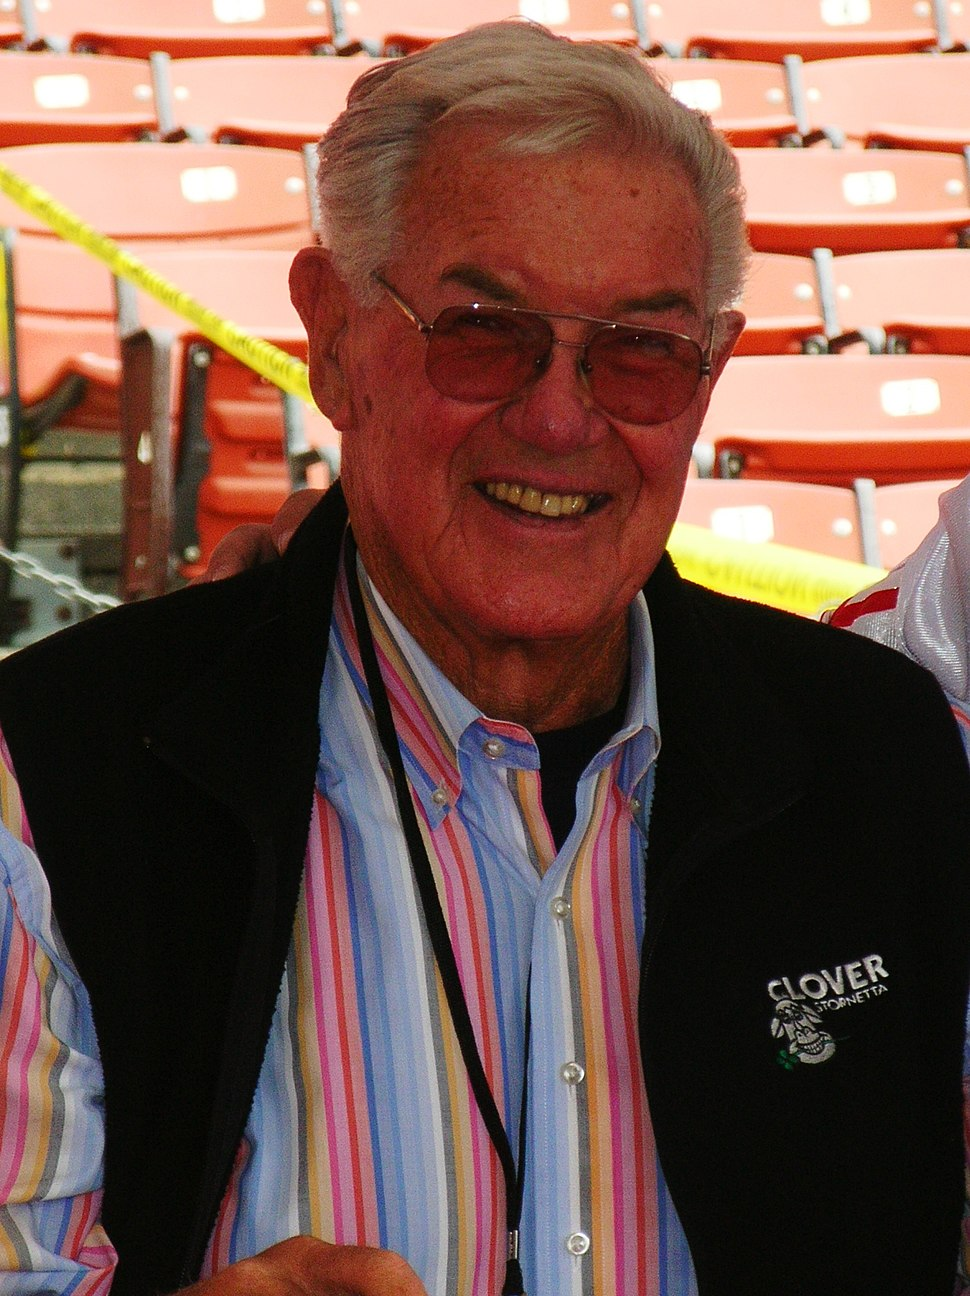 Bob St. Clair at 49ers Family Day 2009